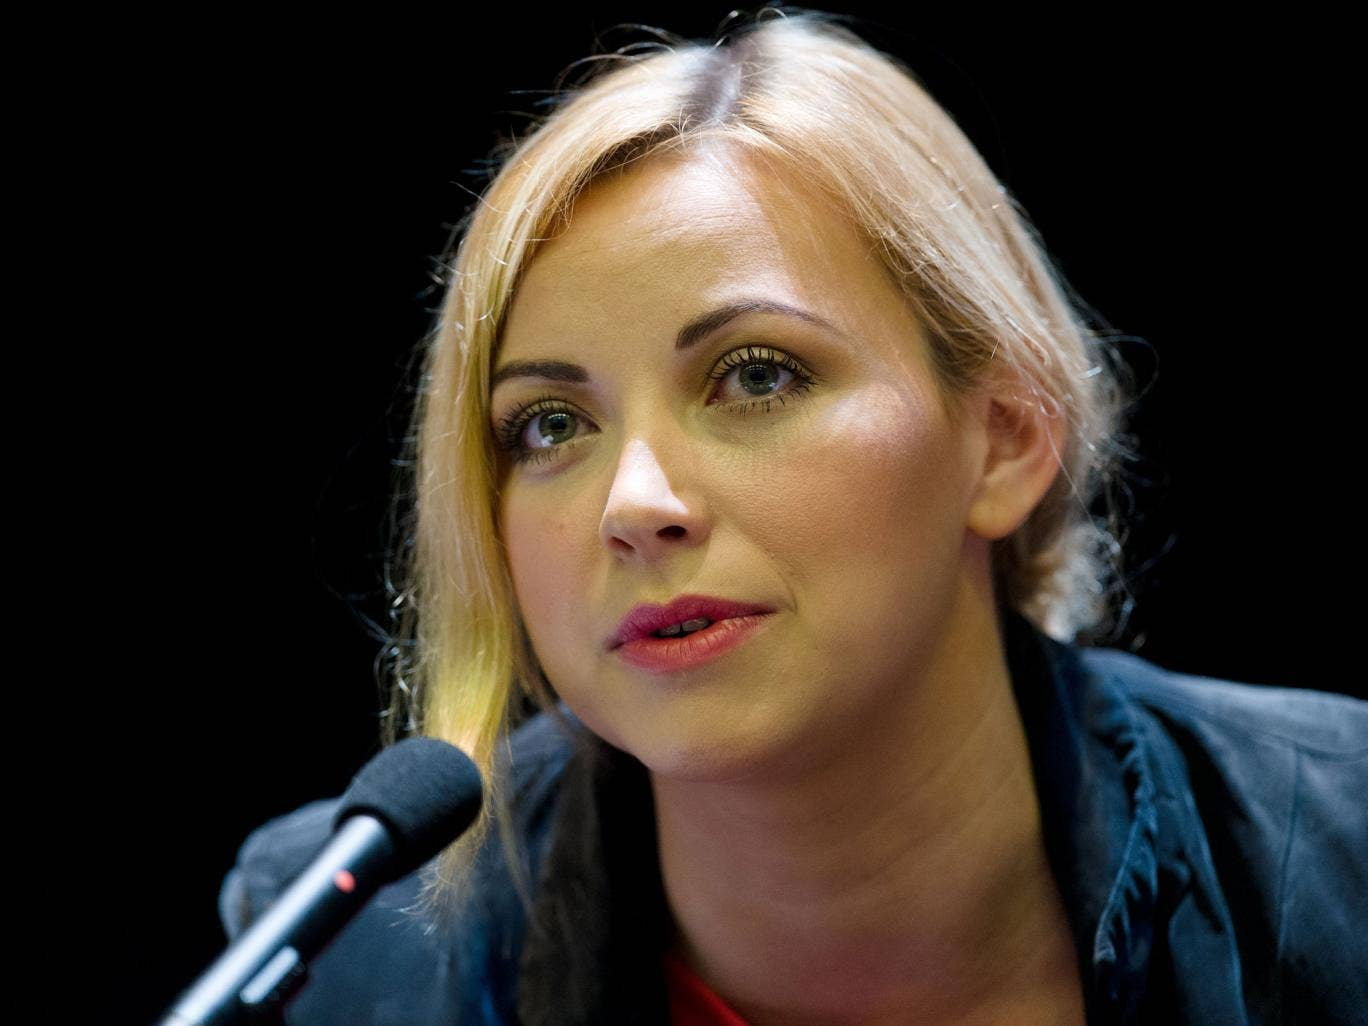 Charlotte Church has launched a scathing attack on the music industry